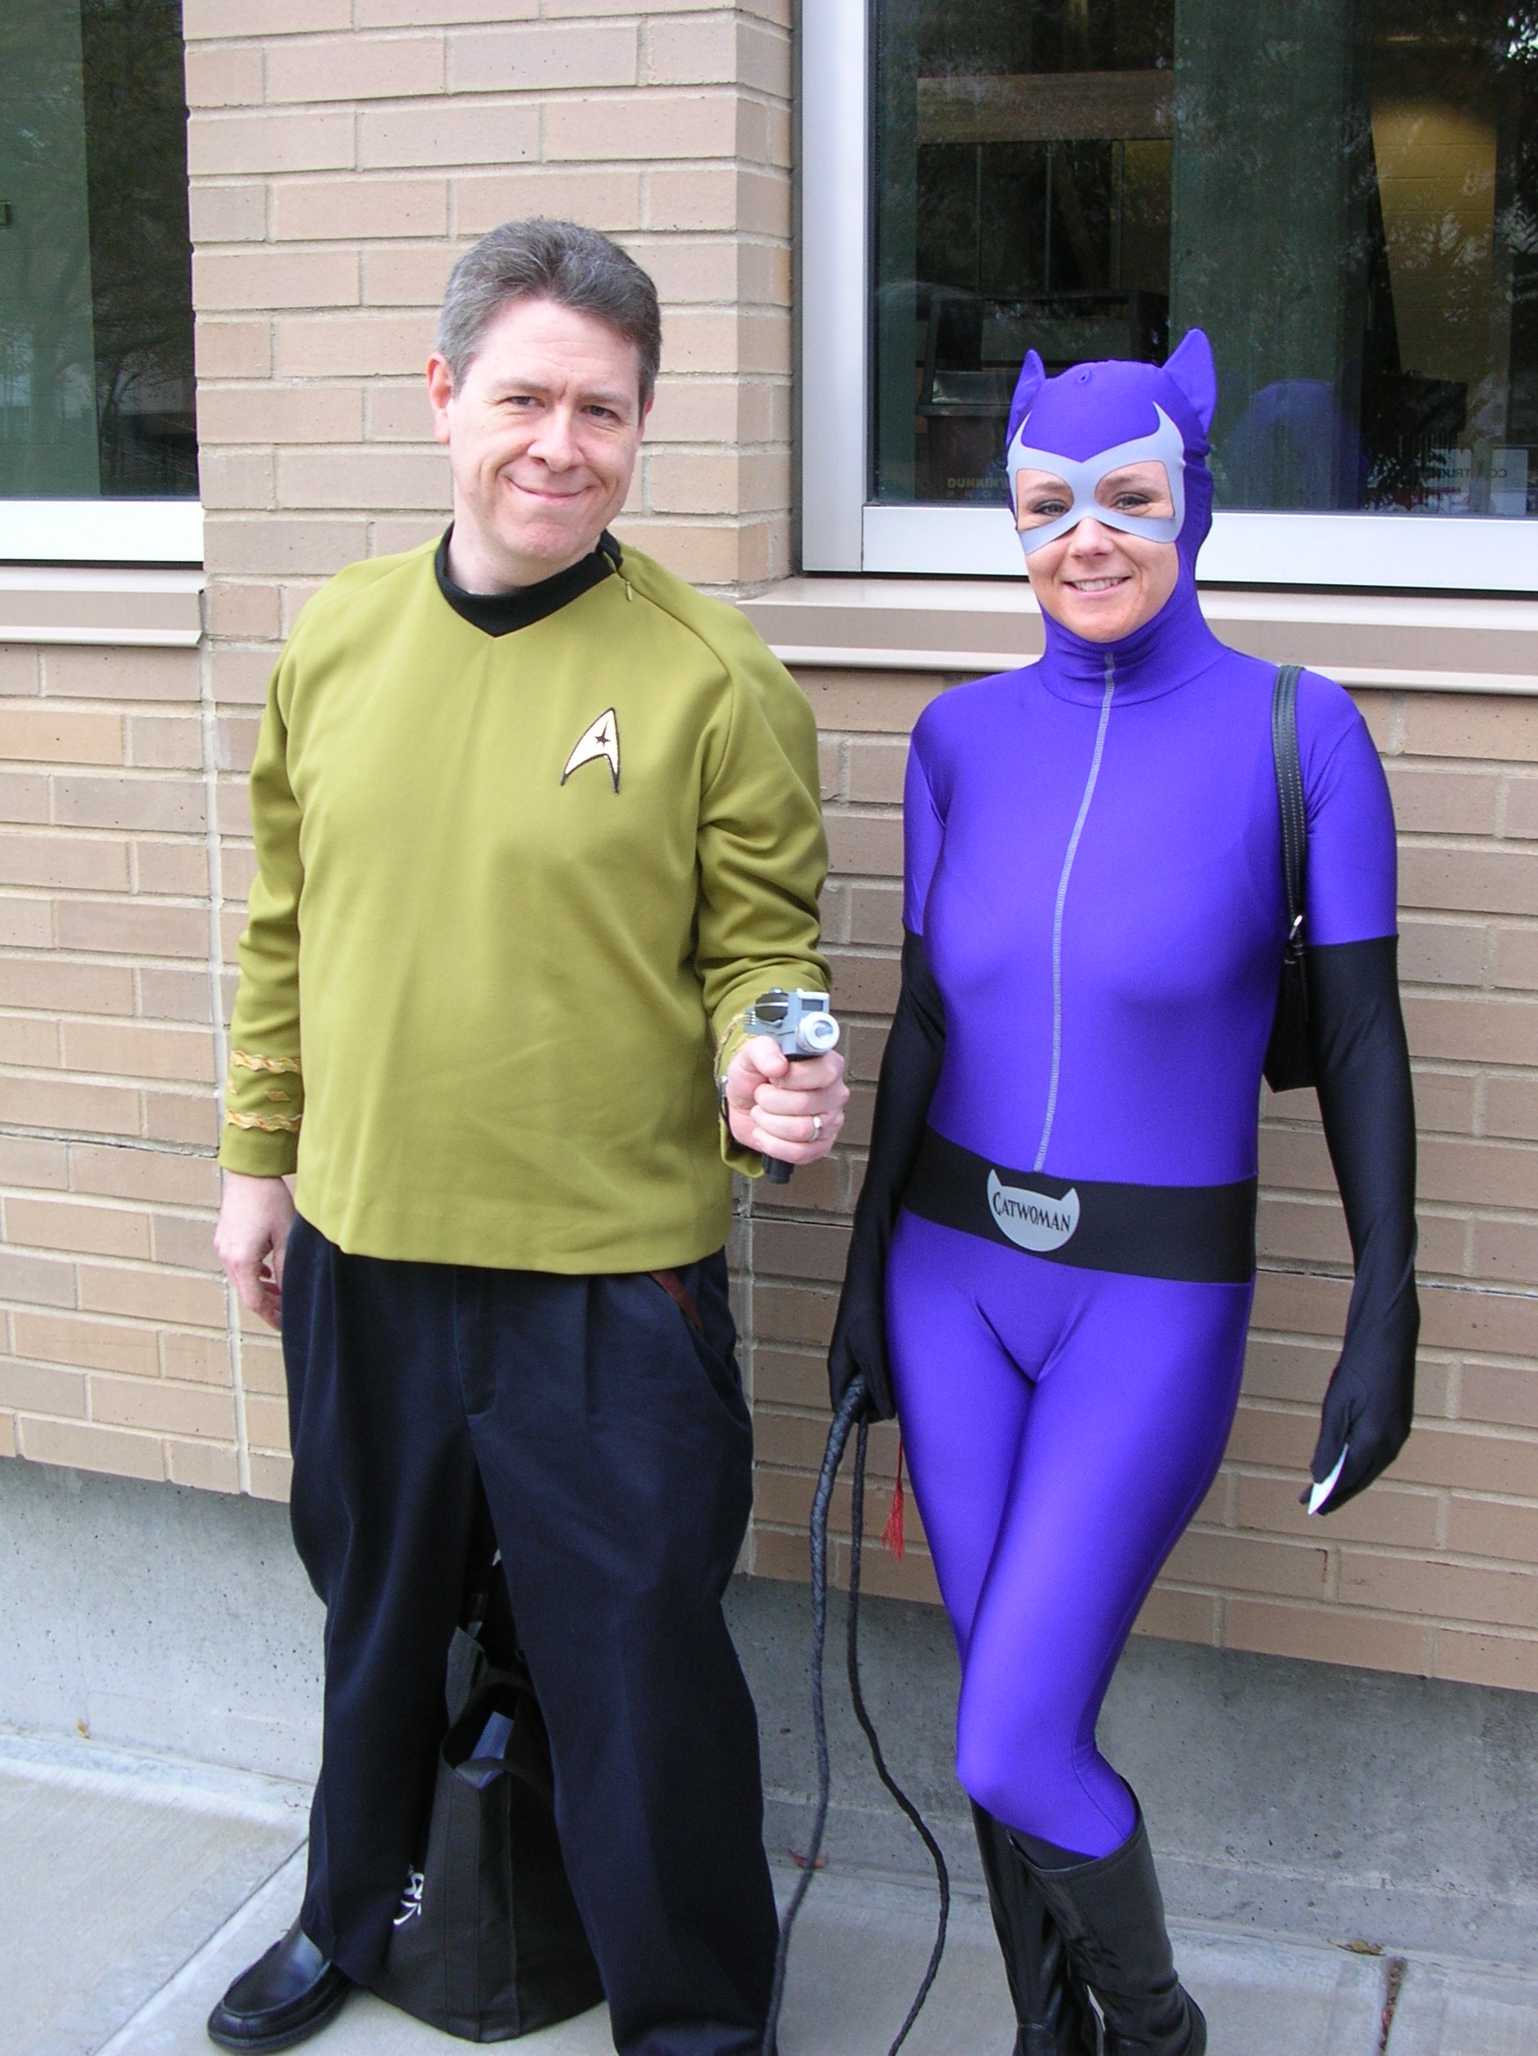 Capt. Kirk and Catwoman